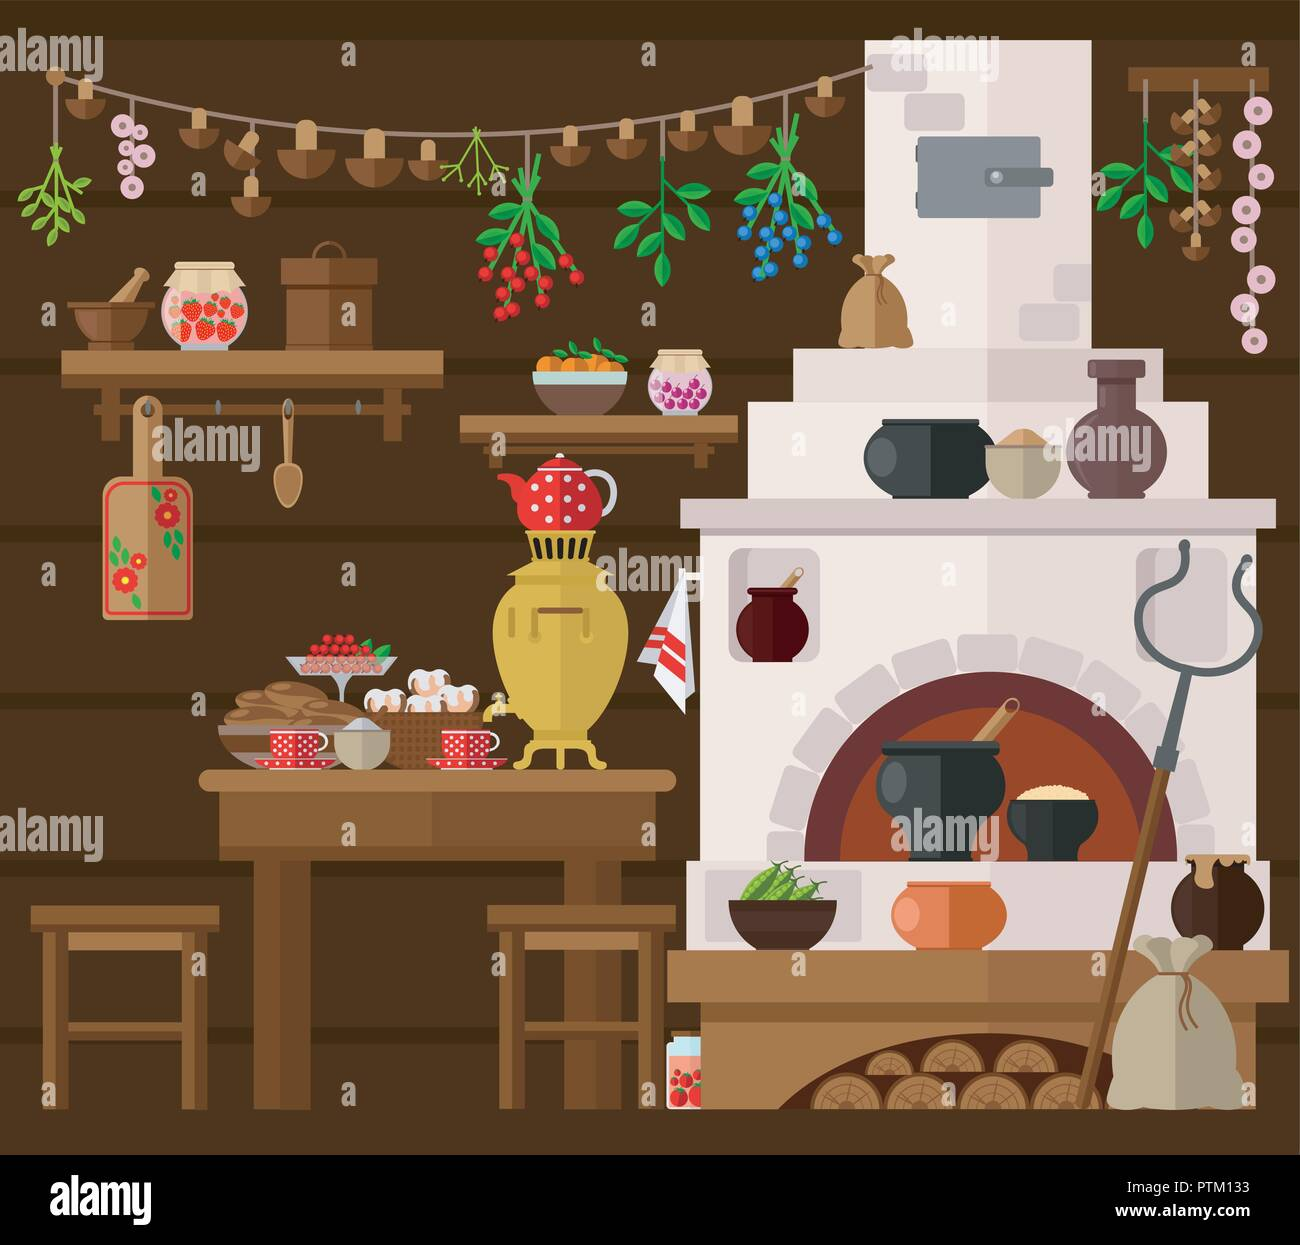 Interior of russian village house with Russian stove. Traditional farm house kitchen. - Stock Vector